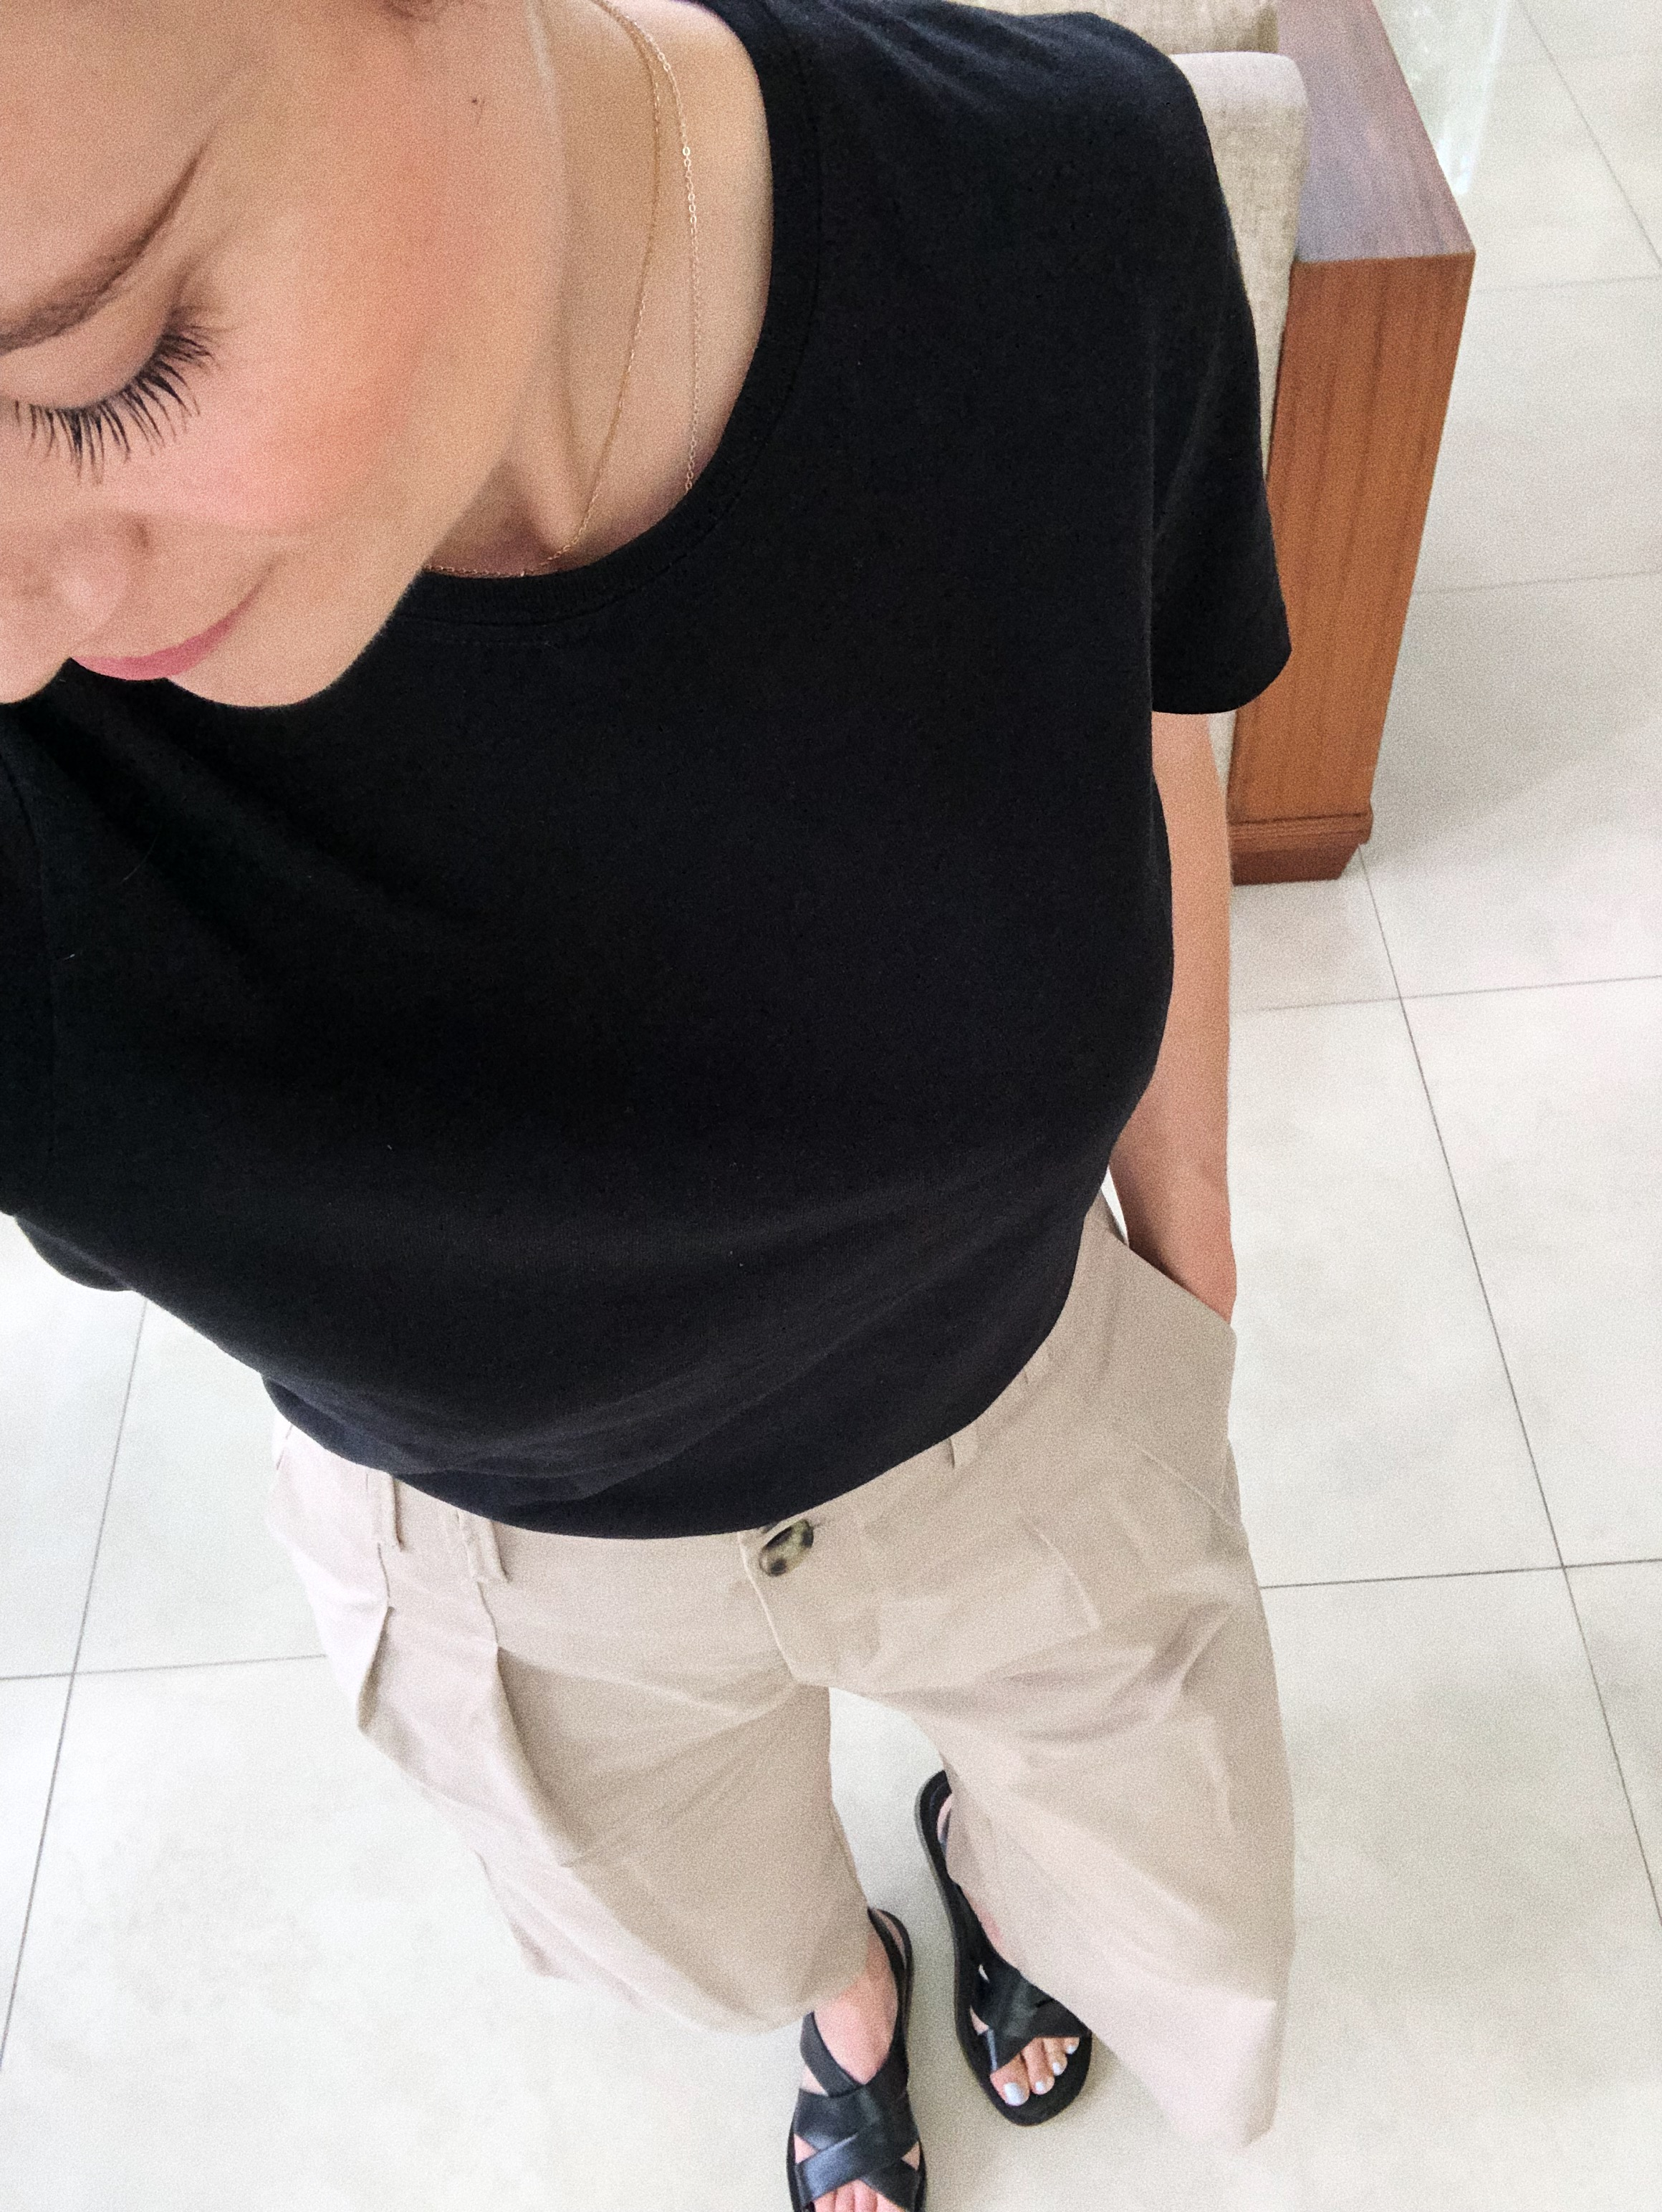 2. basics - there was nothing a t-shirt, high-waisted trousers, and some good shoes couldn't solve, or at least improve…